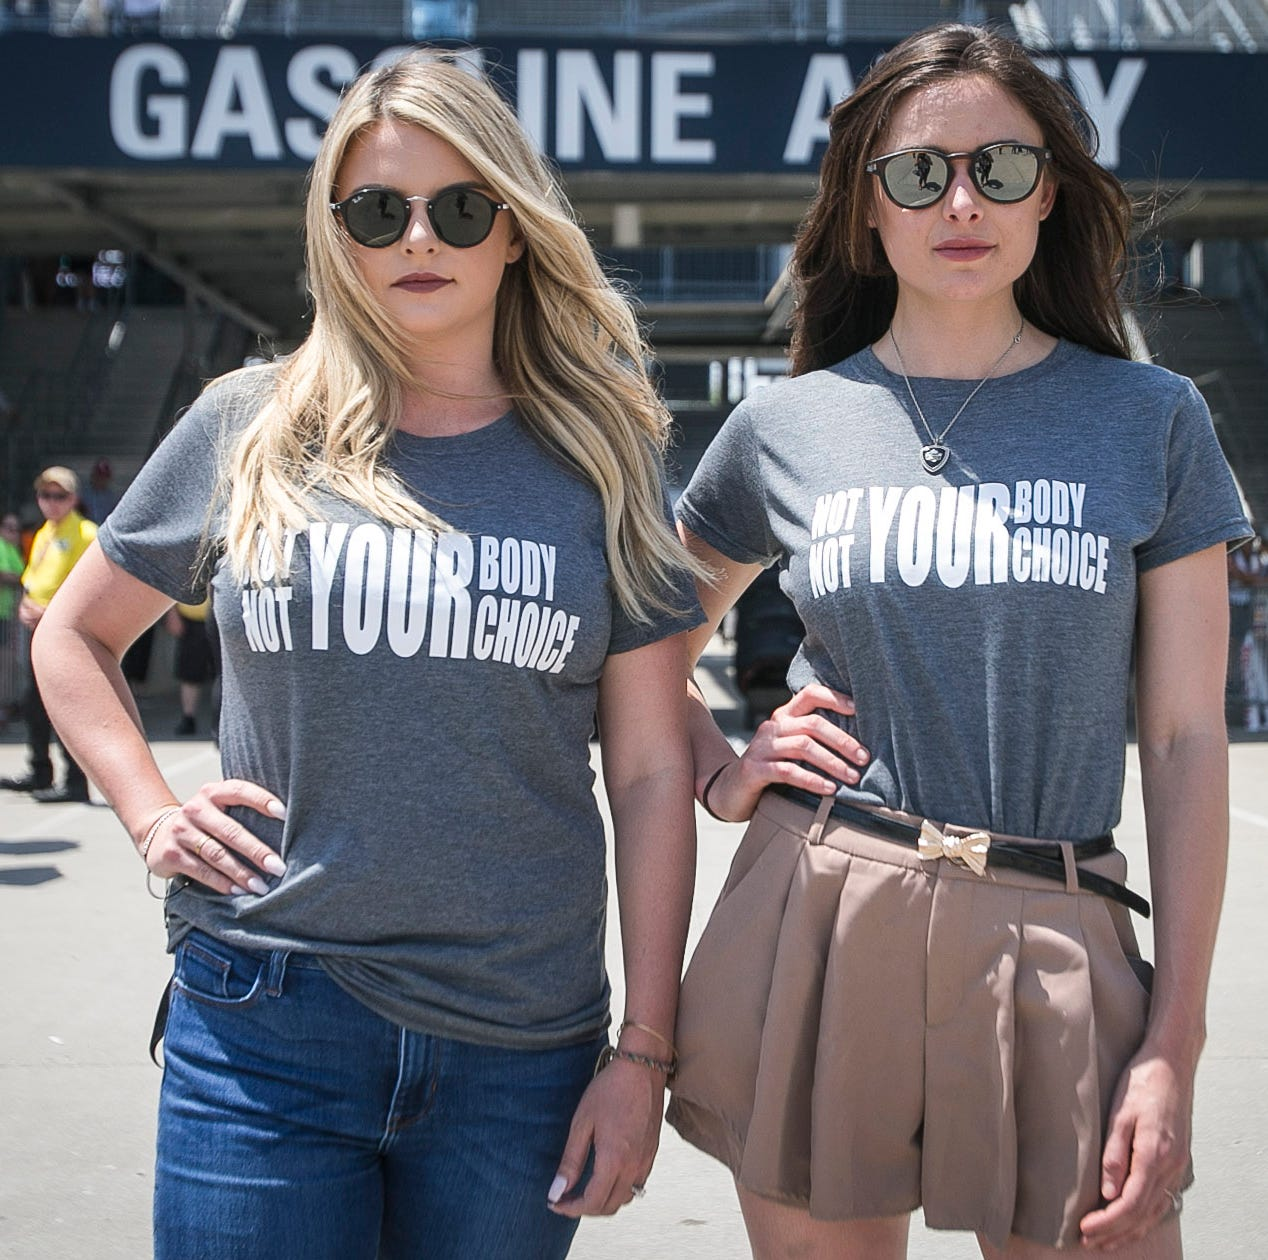 """Hailey McDermott, right, and Ashley Newgarden, left, fiancee and wife of Team Penske drivers Simon Pagenaud and Josef Newgarden, stand in Gasoline Alley at the Indianapolis Motor Speedway, Saturday, May 18, 2019, wearing """"Not YOUR Body, Not YOUR Choice"""" t-shirts in response of the recent passing of the restrictive Alabama abortion bill. ÒI understand it is uncomfortable for us to speak our mind especially about this right now, in the political climate we are in, that is not what we are trying to fight,"""" said McDermott, """"We are just trying to support the women that donÕt have that right now, but letÕs make the people who have done this to us uncomfortable."""""""